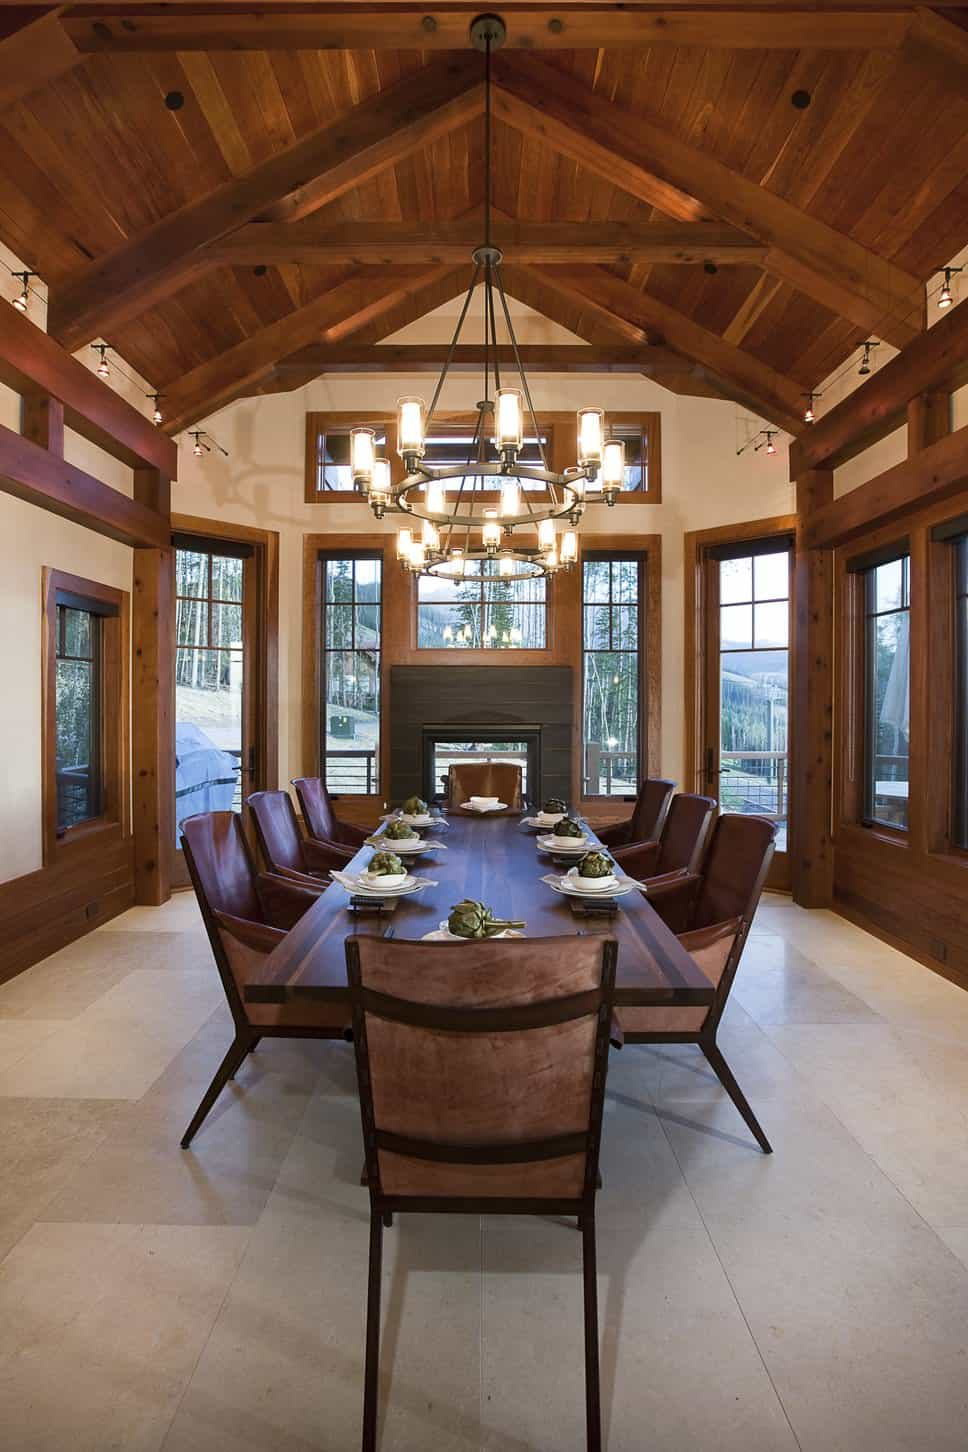 Long and narrow dining room showcases tiled flooring and a cathedral ceiling mounted with track lights and wrought iron chandeliers. It includes a wooden dining set and glass paneled windows inviting natural light in.